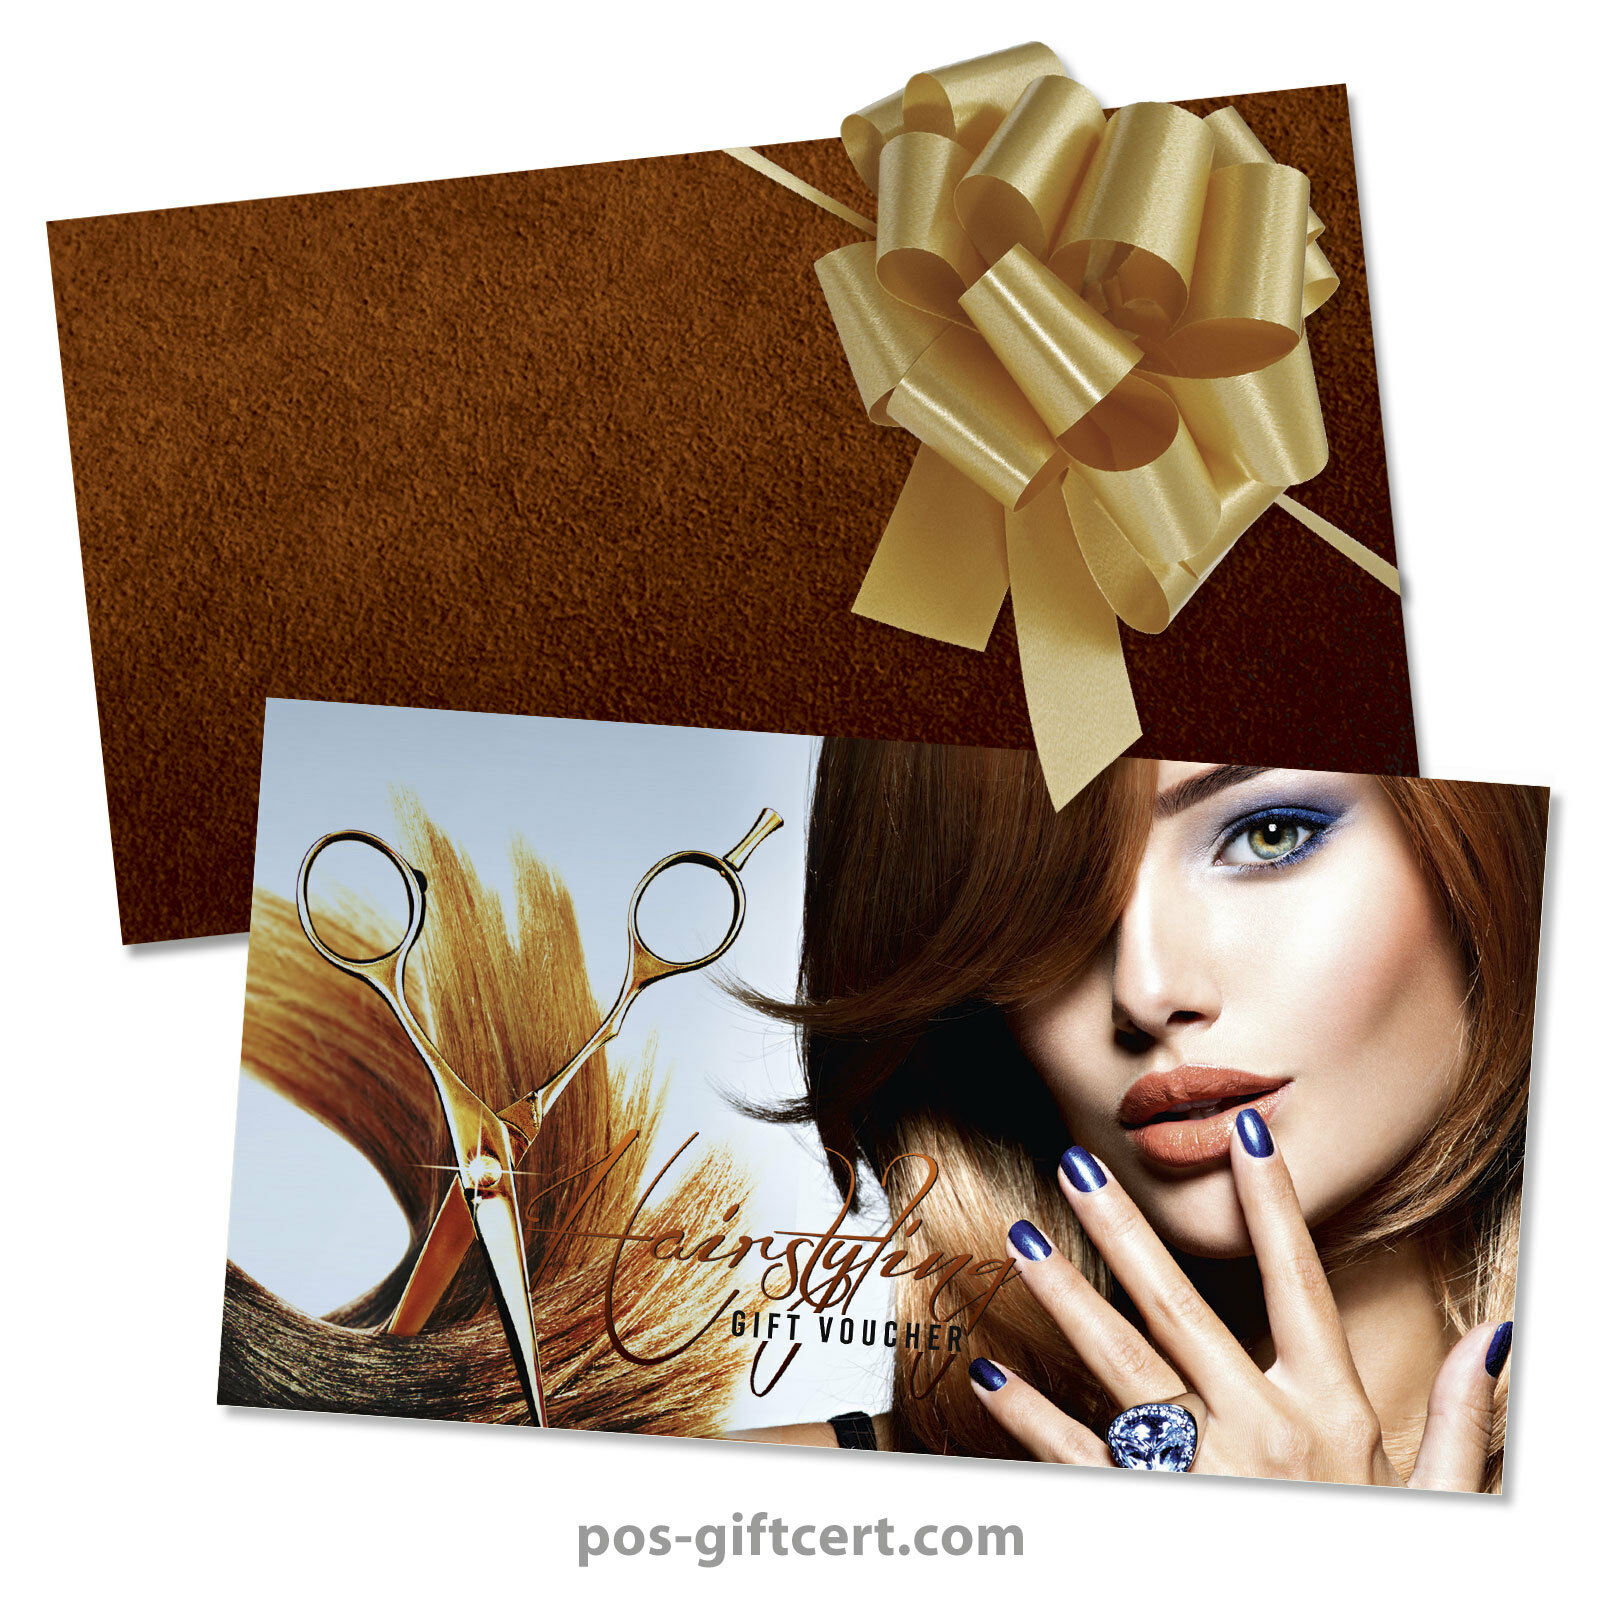 Gift vouchers  envelopes  pull bows for hair salons K1298GB | Großartig